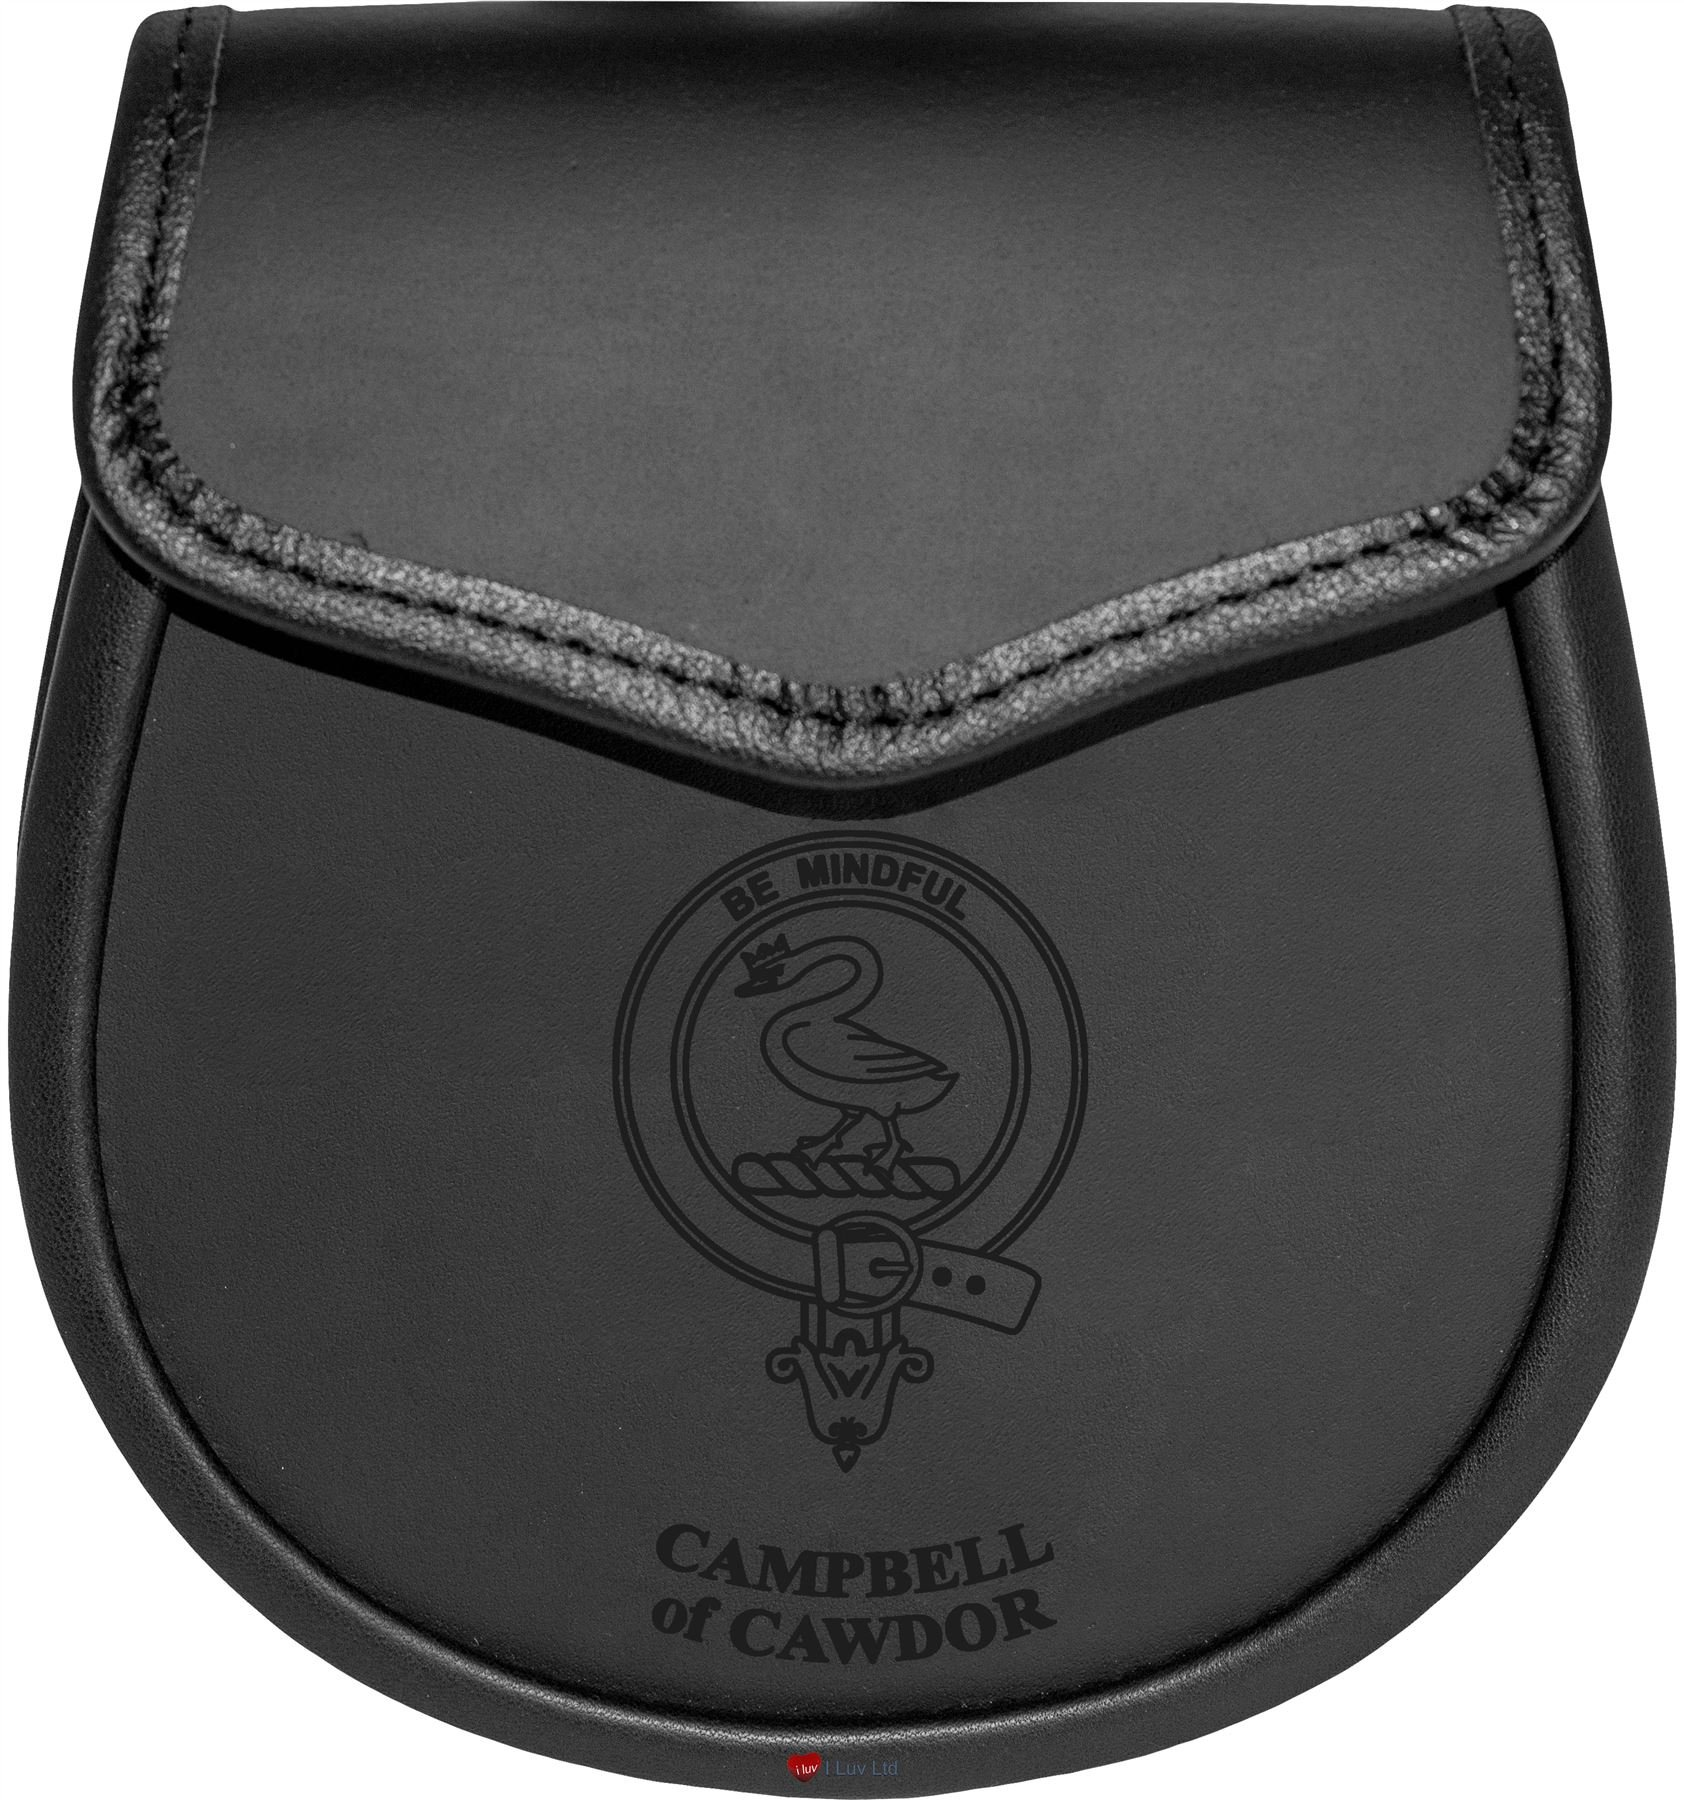 Campbell of Cawdor Leather Day Sporran Scottish Clan Crest